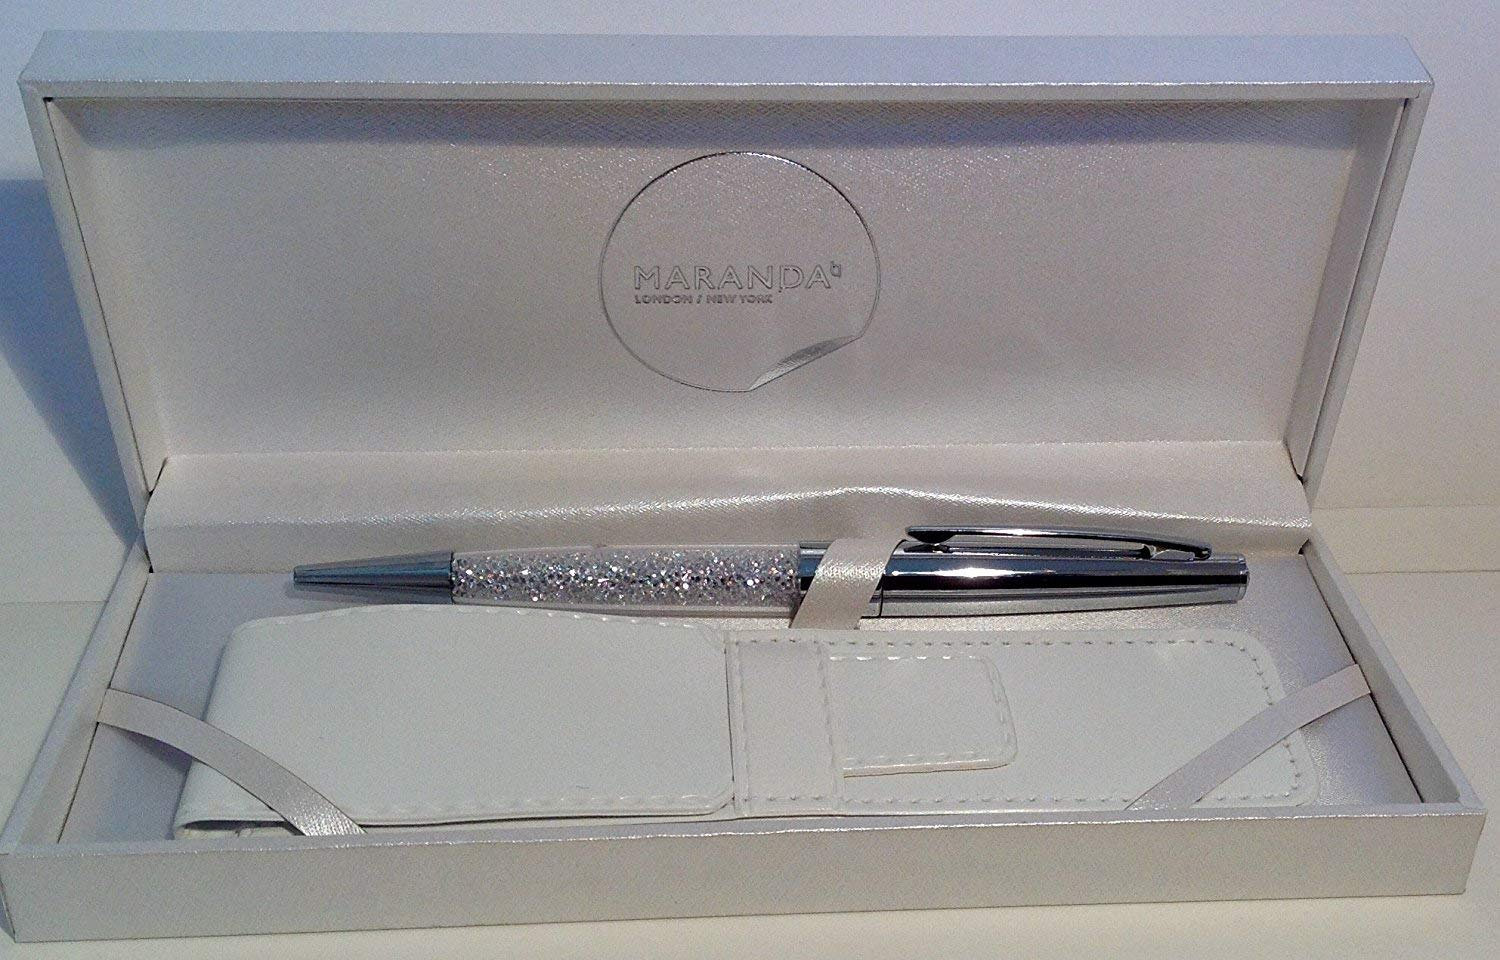 Maranda-Ti Silver Swarovski Crystal Black Ink Ball Pen Gift For Ladies - Lightweight Ballpoint 22g - Silver Case 18 x 8 cms - Luxury Silver Cover